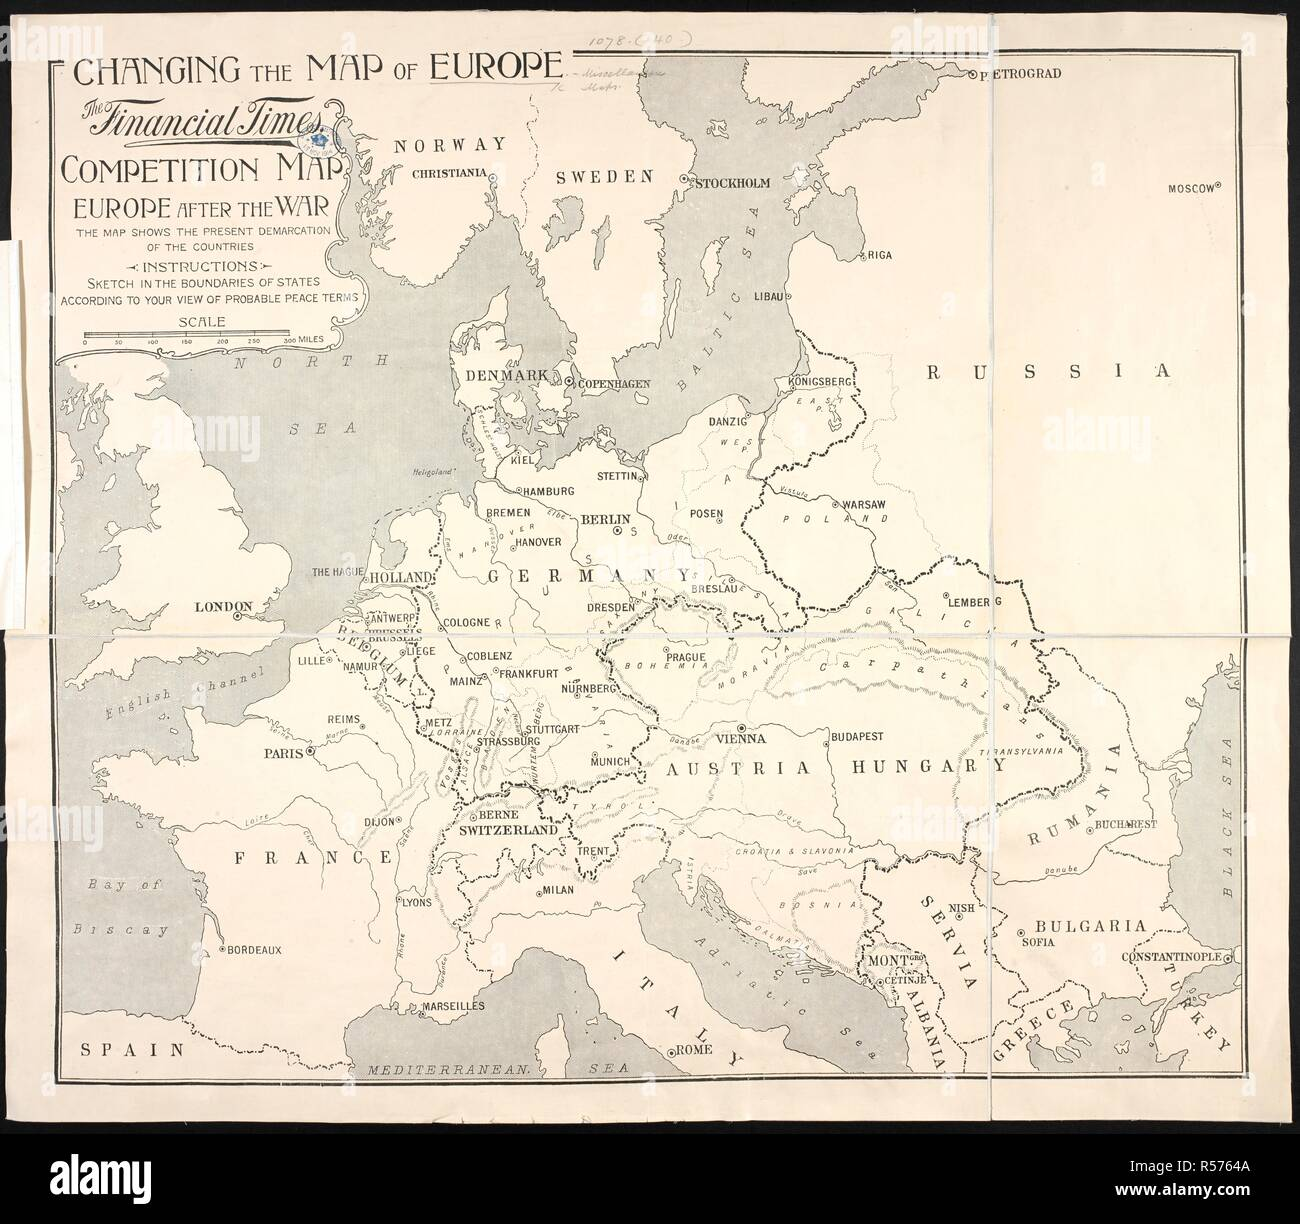 How Did Ww1 Change The Map Of Europe.Map Europe 1914 Stock Photos Map Europe 1914 Stock Images Alamy